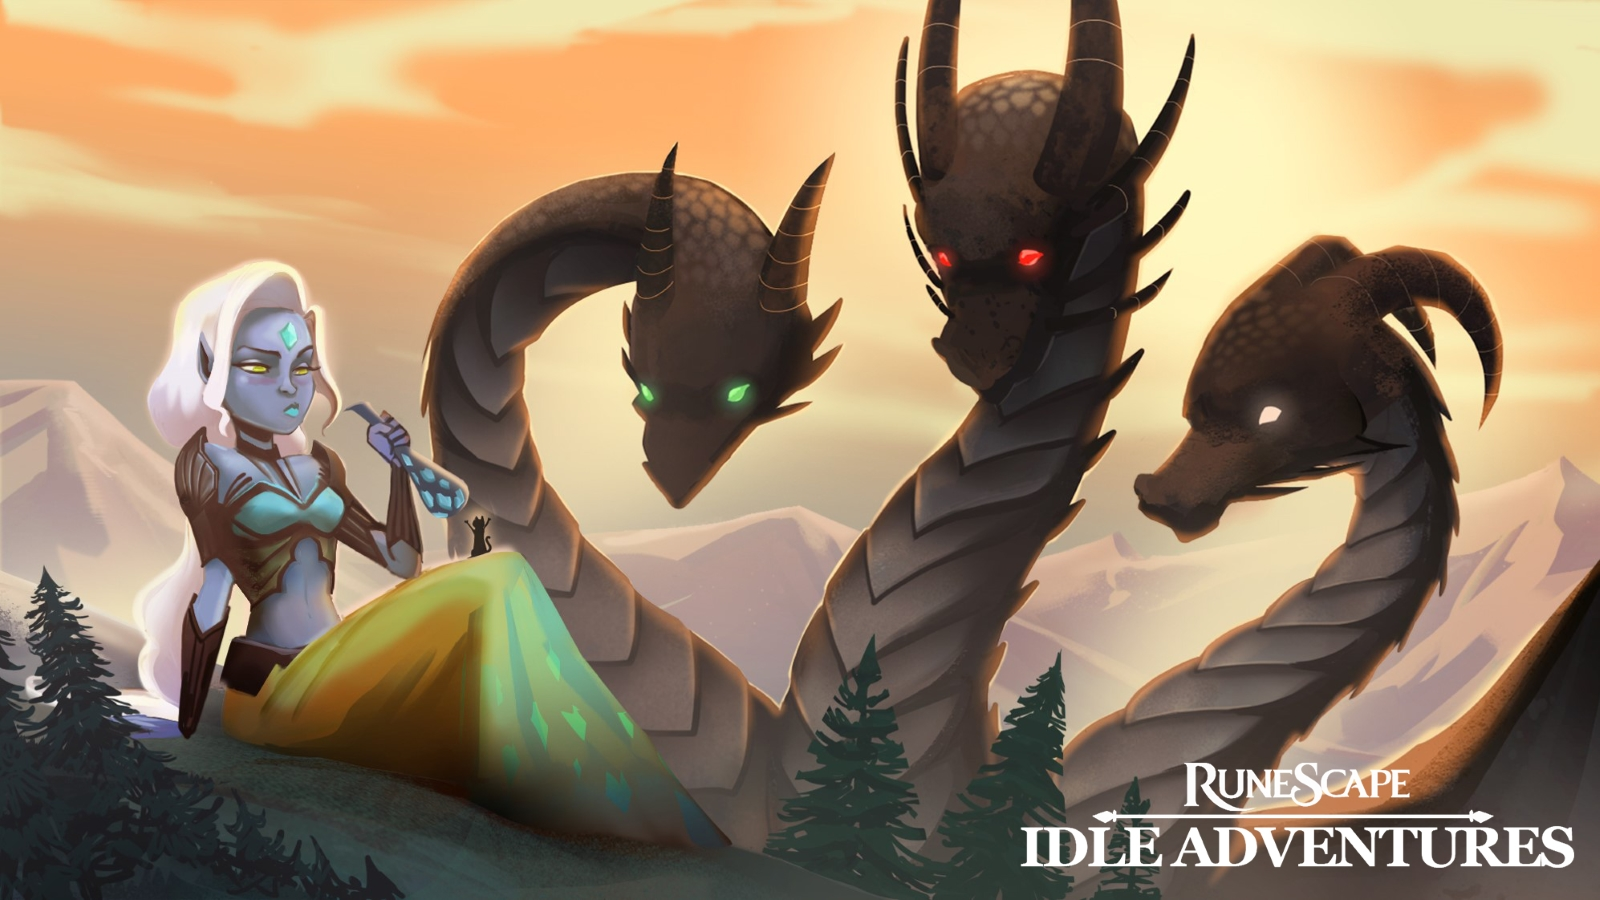 RuneScape: Idle Adventures Announced header